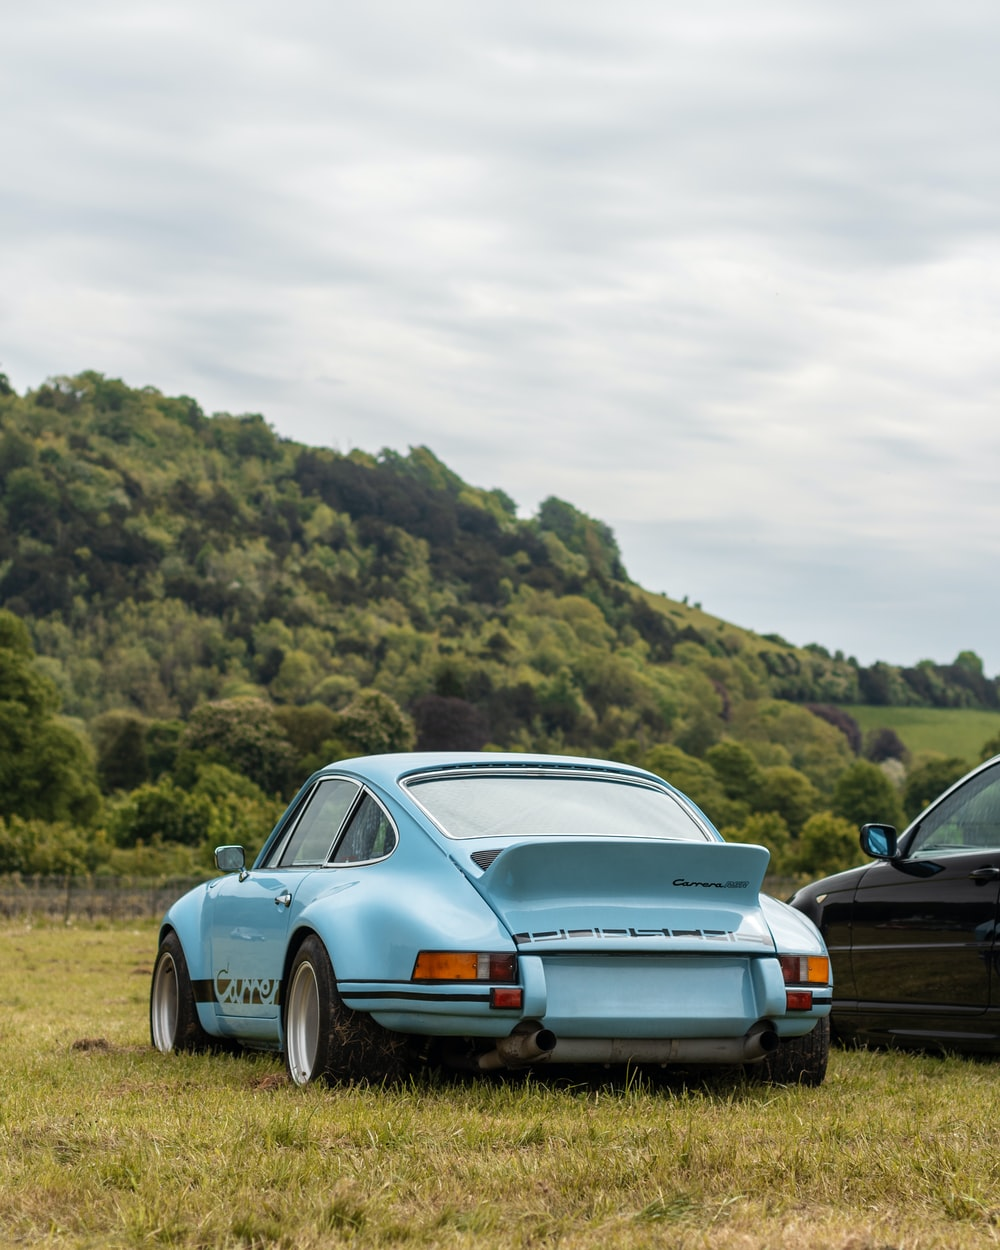 blue and black cars parked on green grass under white cloudy sky